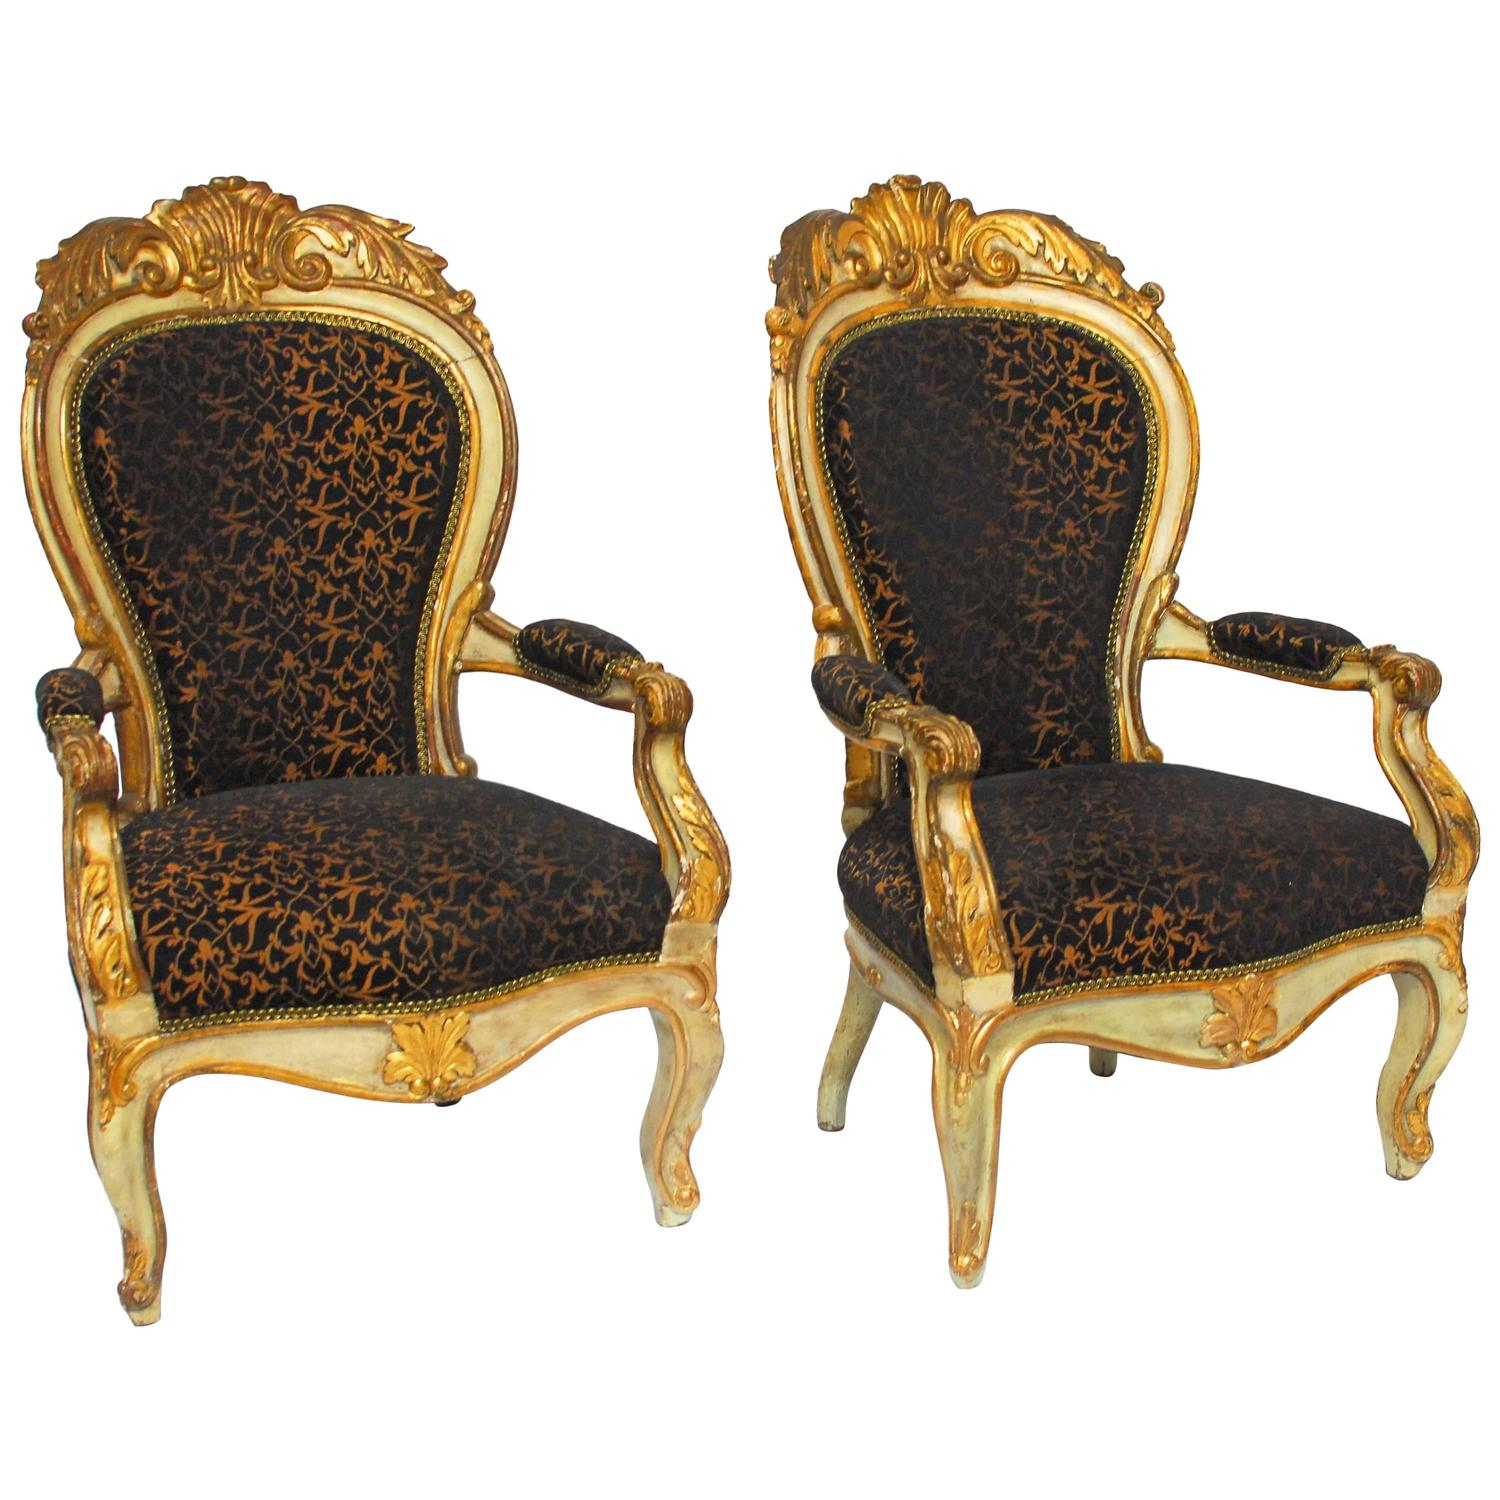 19th century louis xv fauteuils at 1stdibs. Black Bedroom Furniture Sets. Home Design Ideas